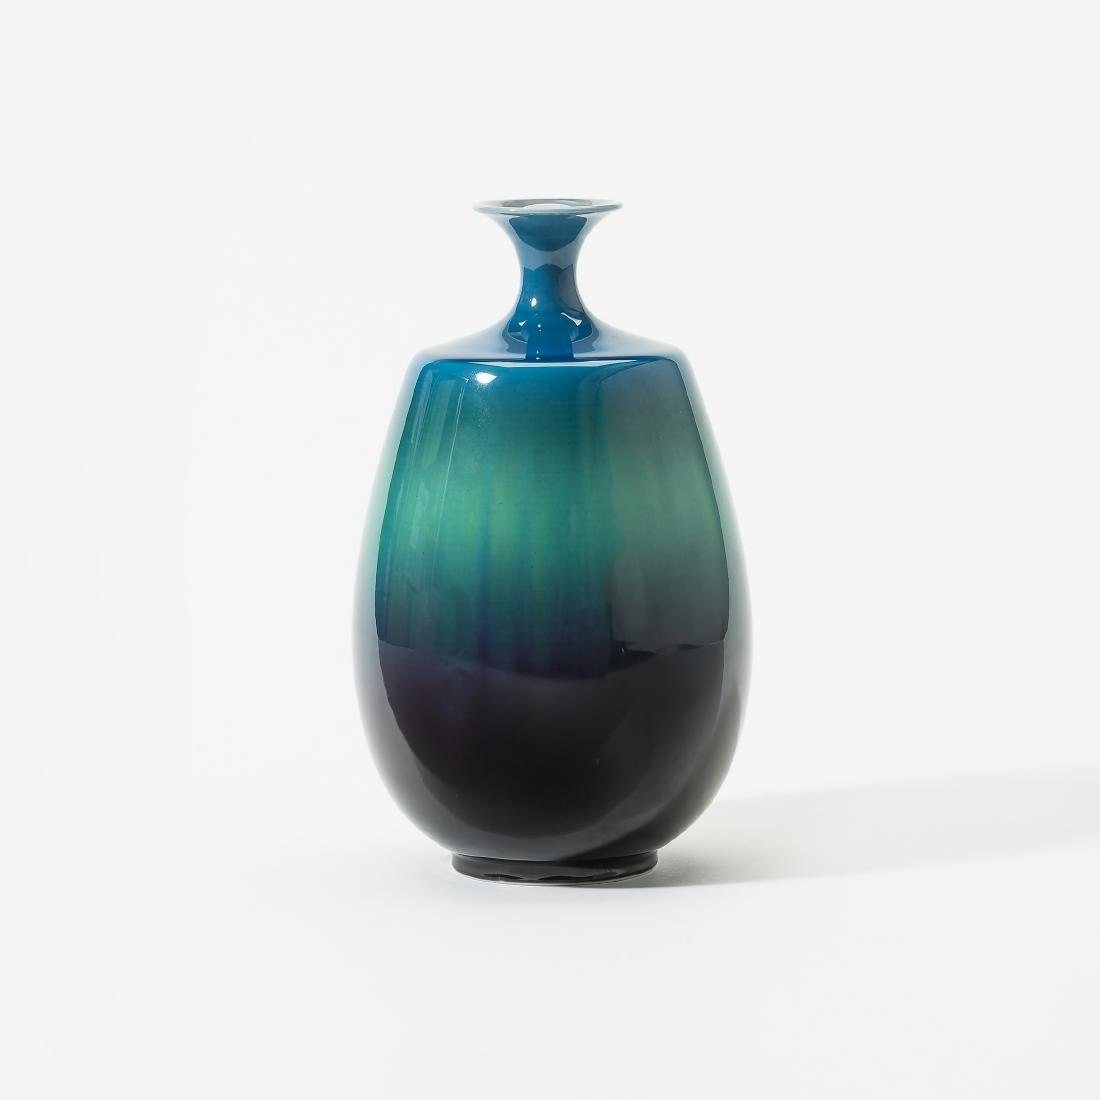 A Japanese blue, green and purple glazed vase